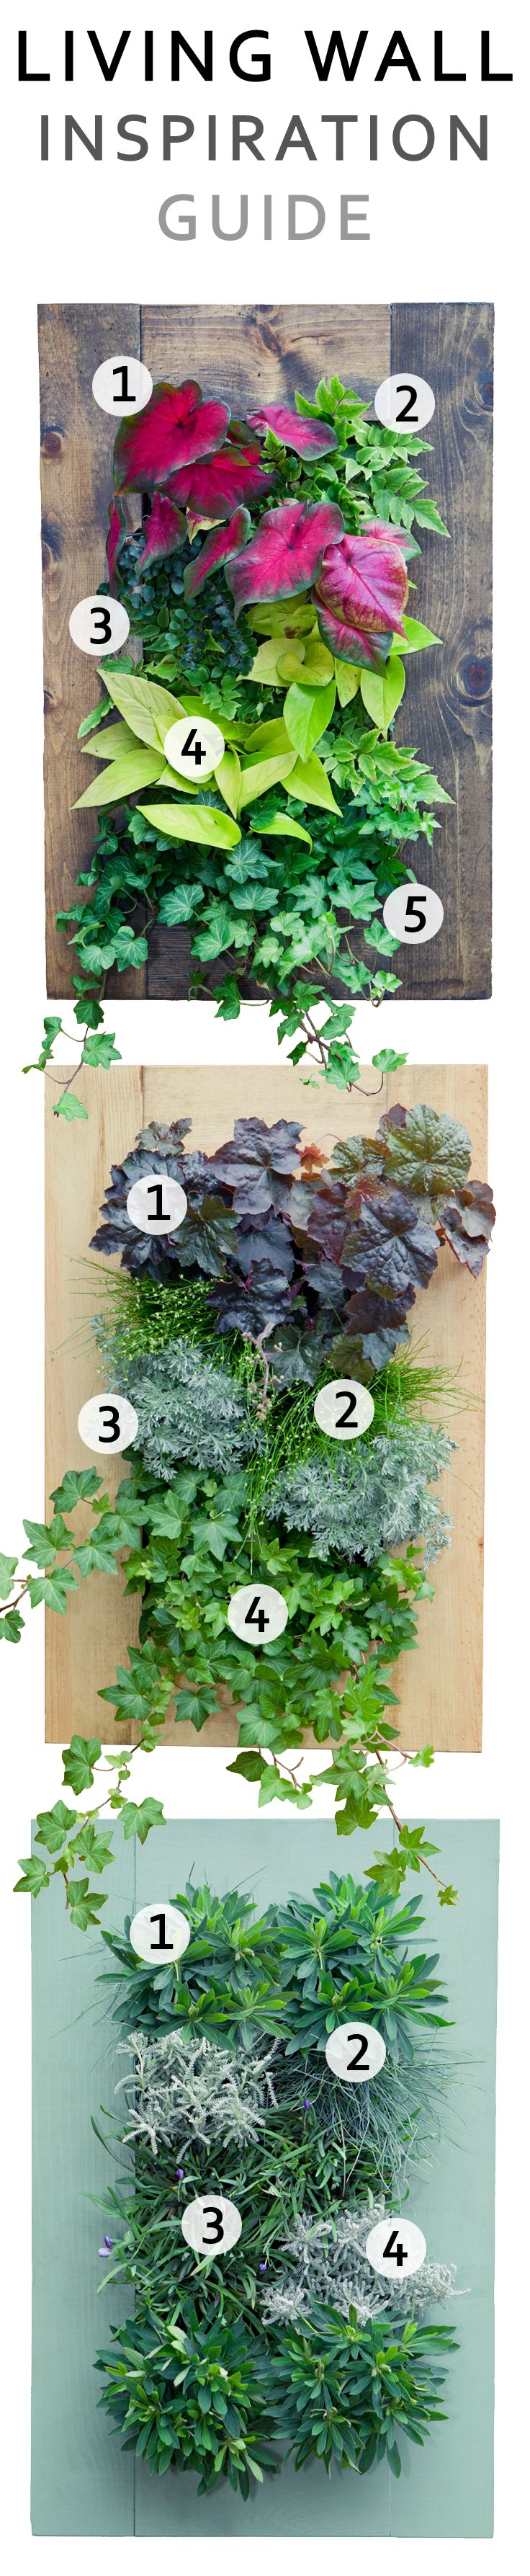 Find Inspiration For Your Own Lush Living Wall Top 1